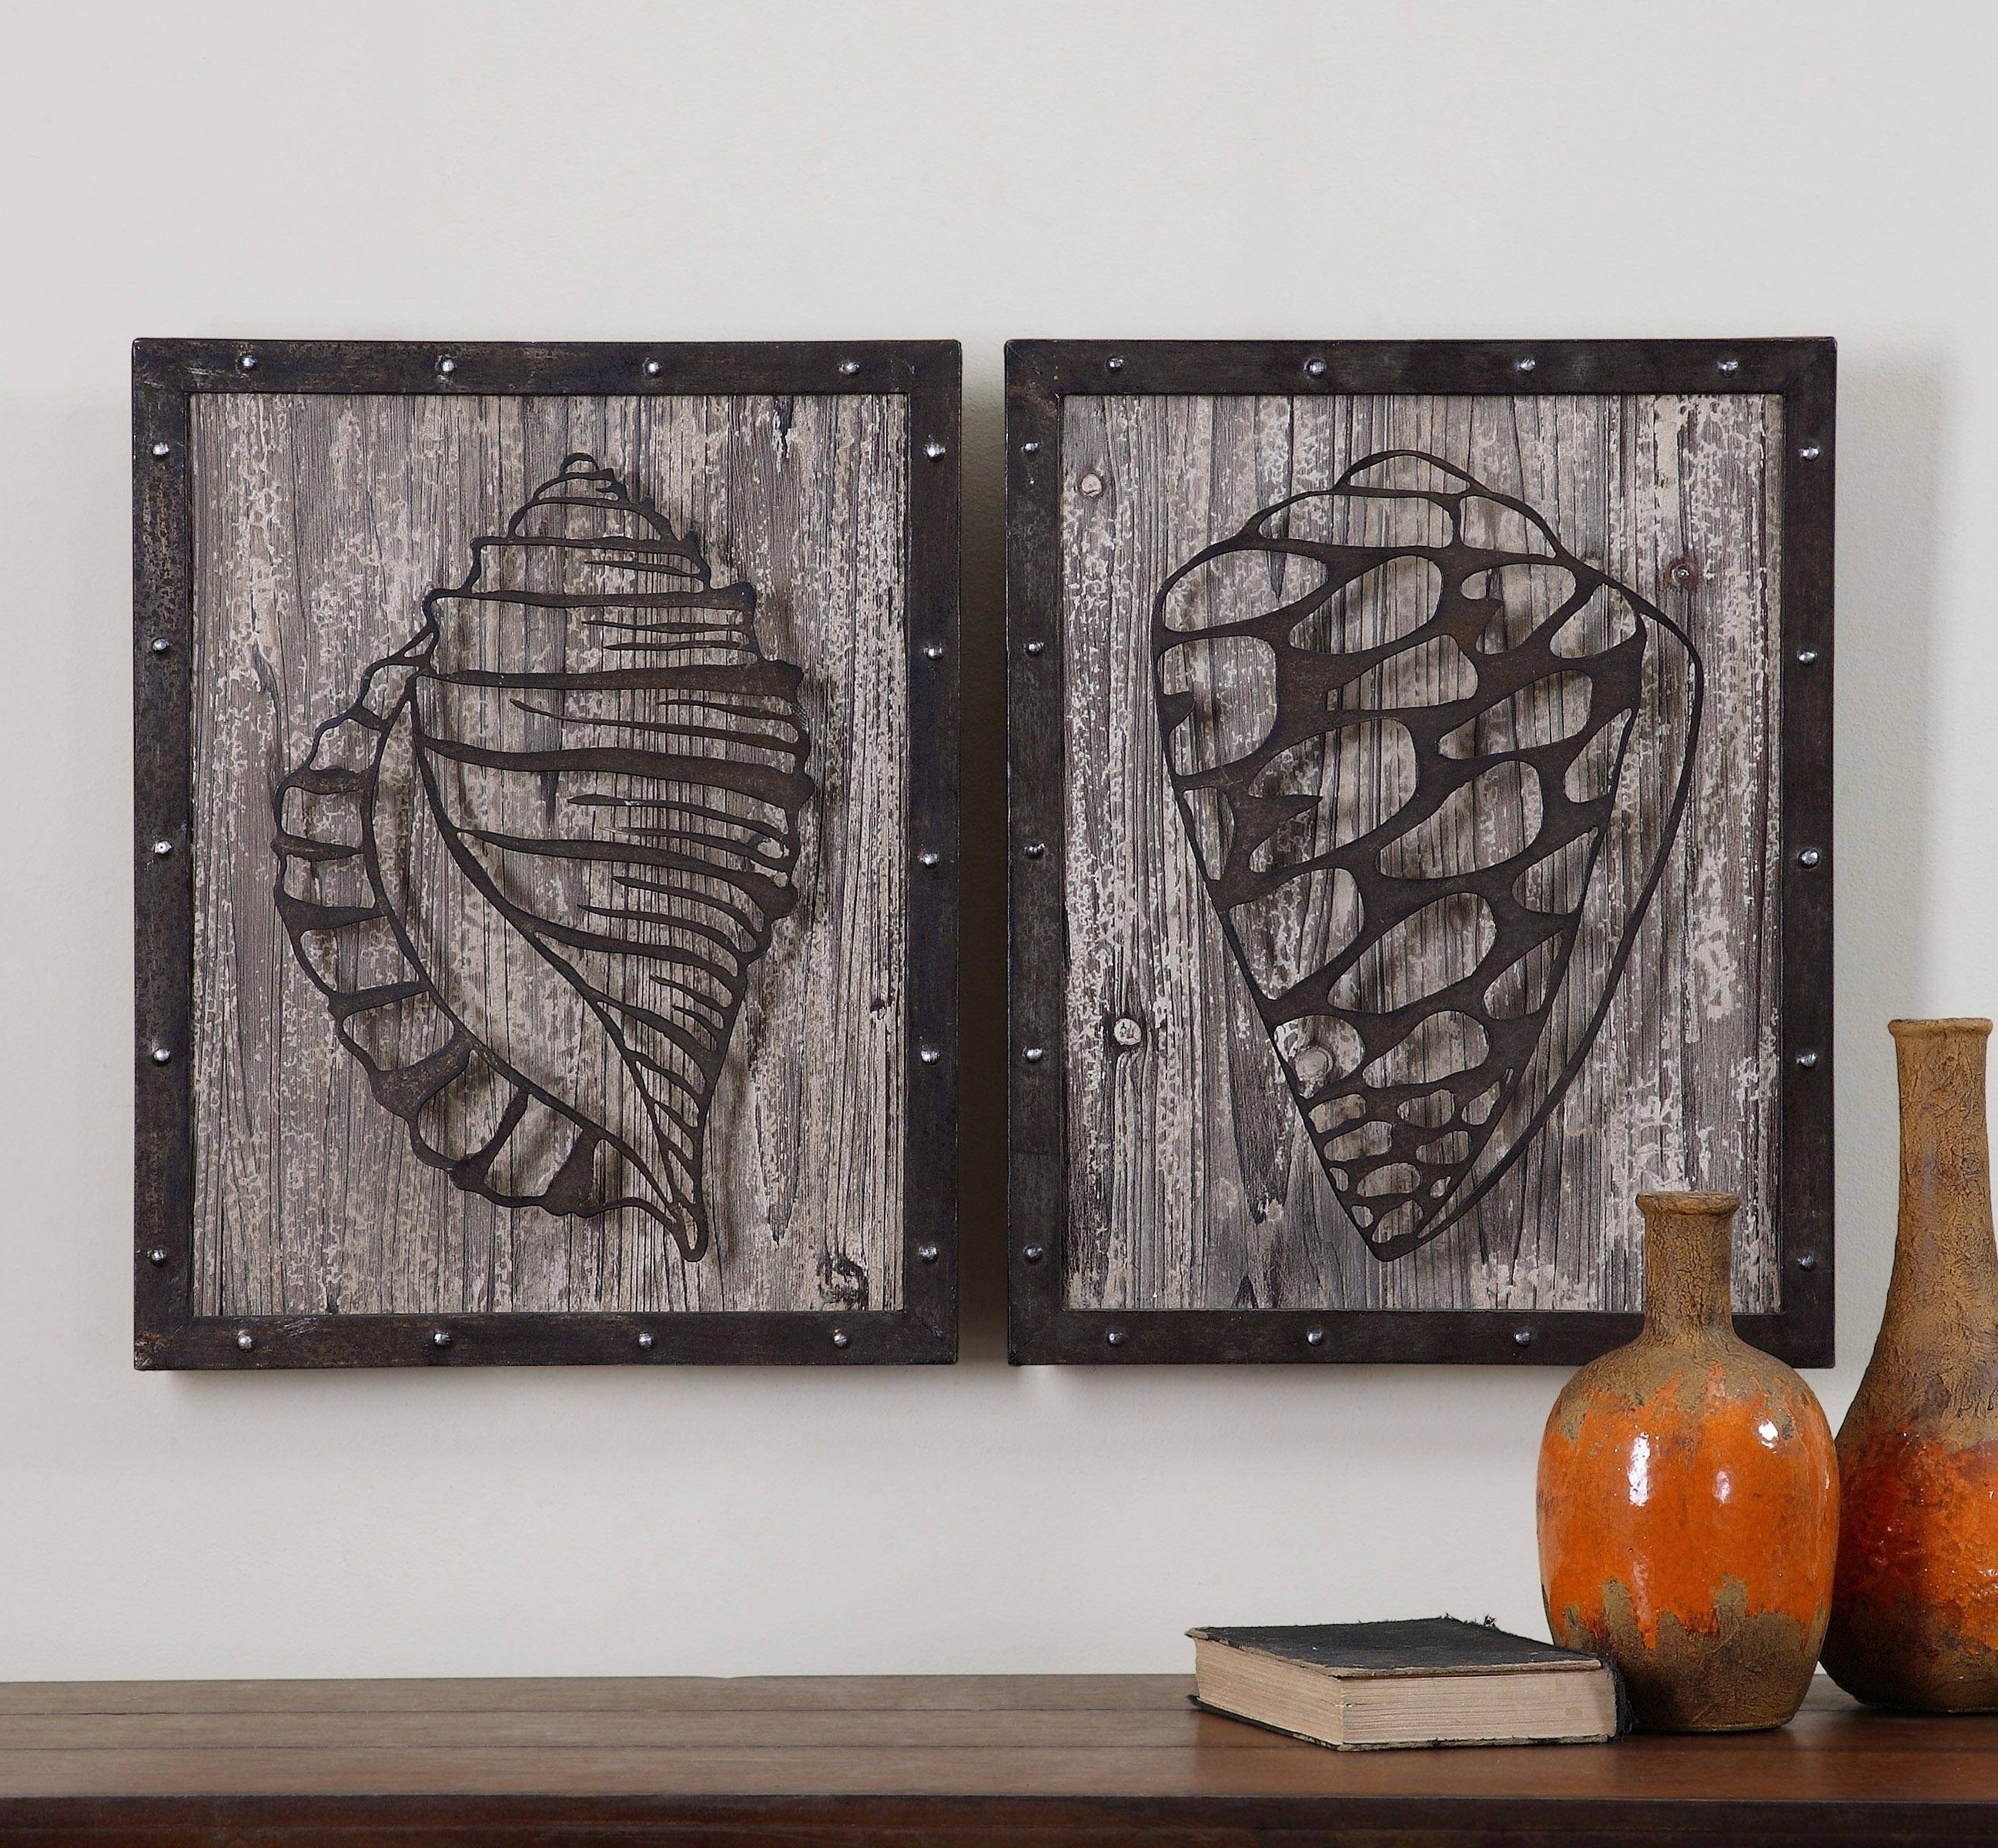 Rustic Metal Wall Art Pertaining To Trendy Rustic Wood And Metal Wall Art 2018 Latest Wood Metal Wall Art (View 13 of 15)